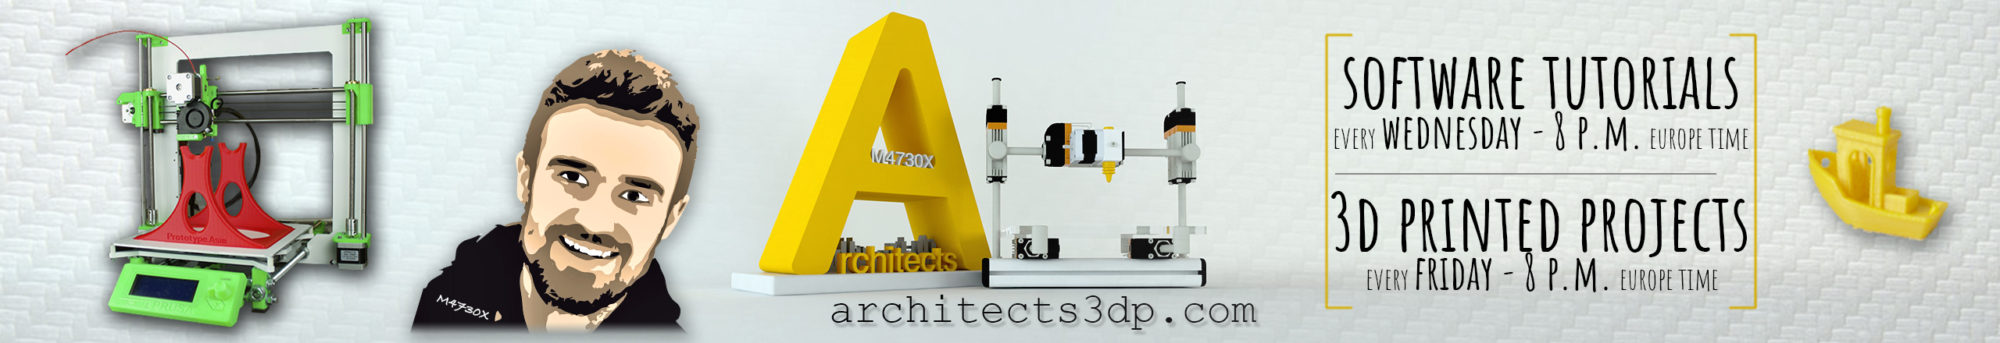 Architects3DP